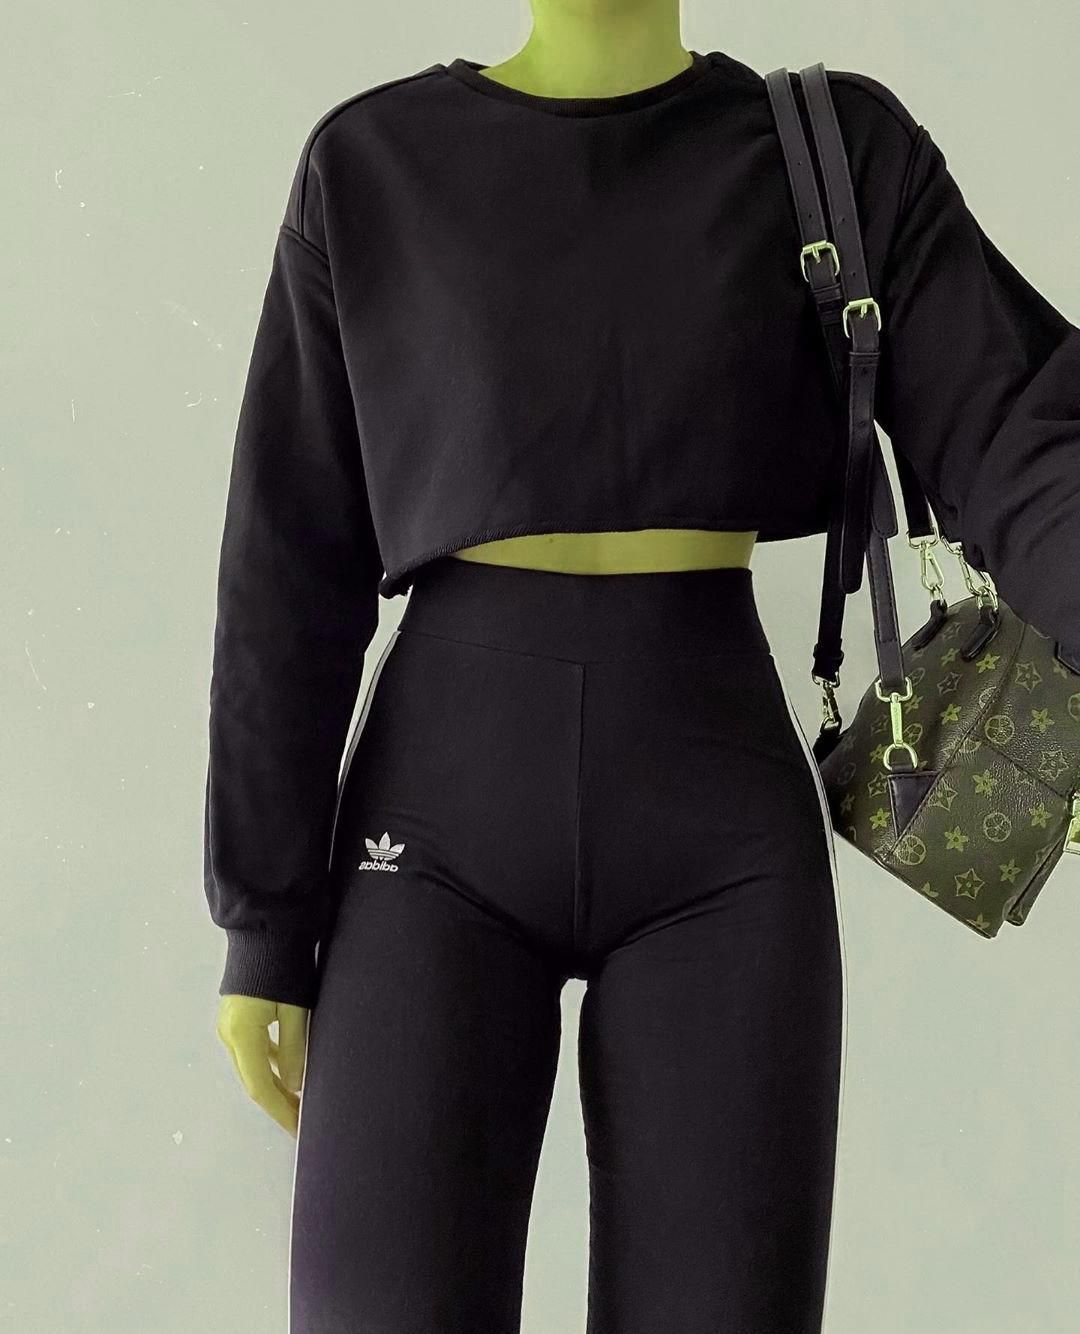 Slimming Fashion Tips black. #polishgirl #picoftheday #photooftheday #outfit #outfitoftheday #stylepost #streetwear #ootd #streetstyle #adidas #sporty.Slimming Fashion Tips  black. #polishgirl #picoftheday #photooftheday #outfit #outfitoftheday